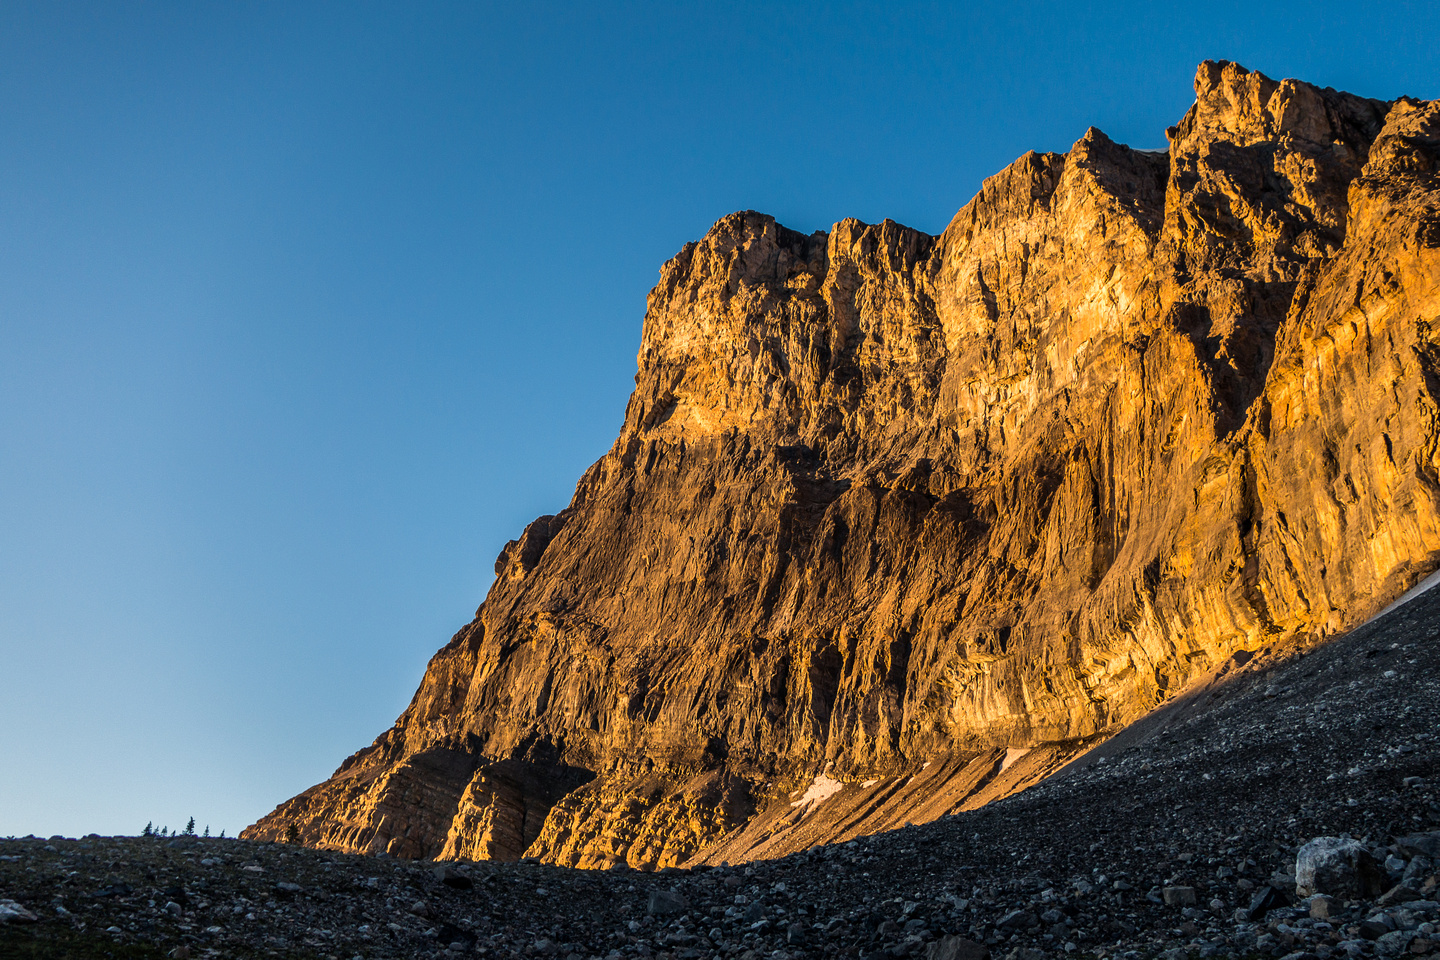 Warm sunrise on the cliffs above the approach traverse.